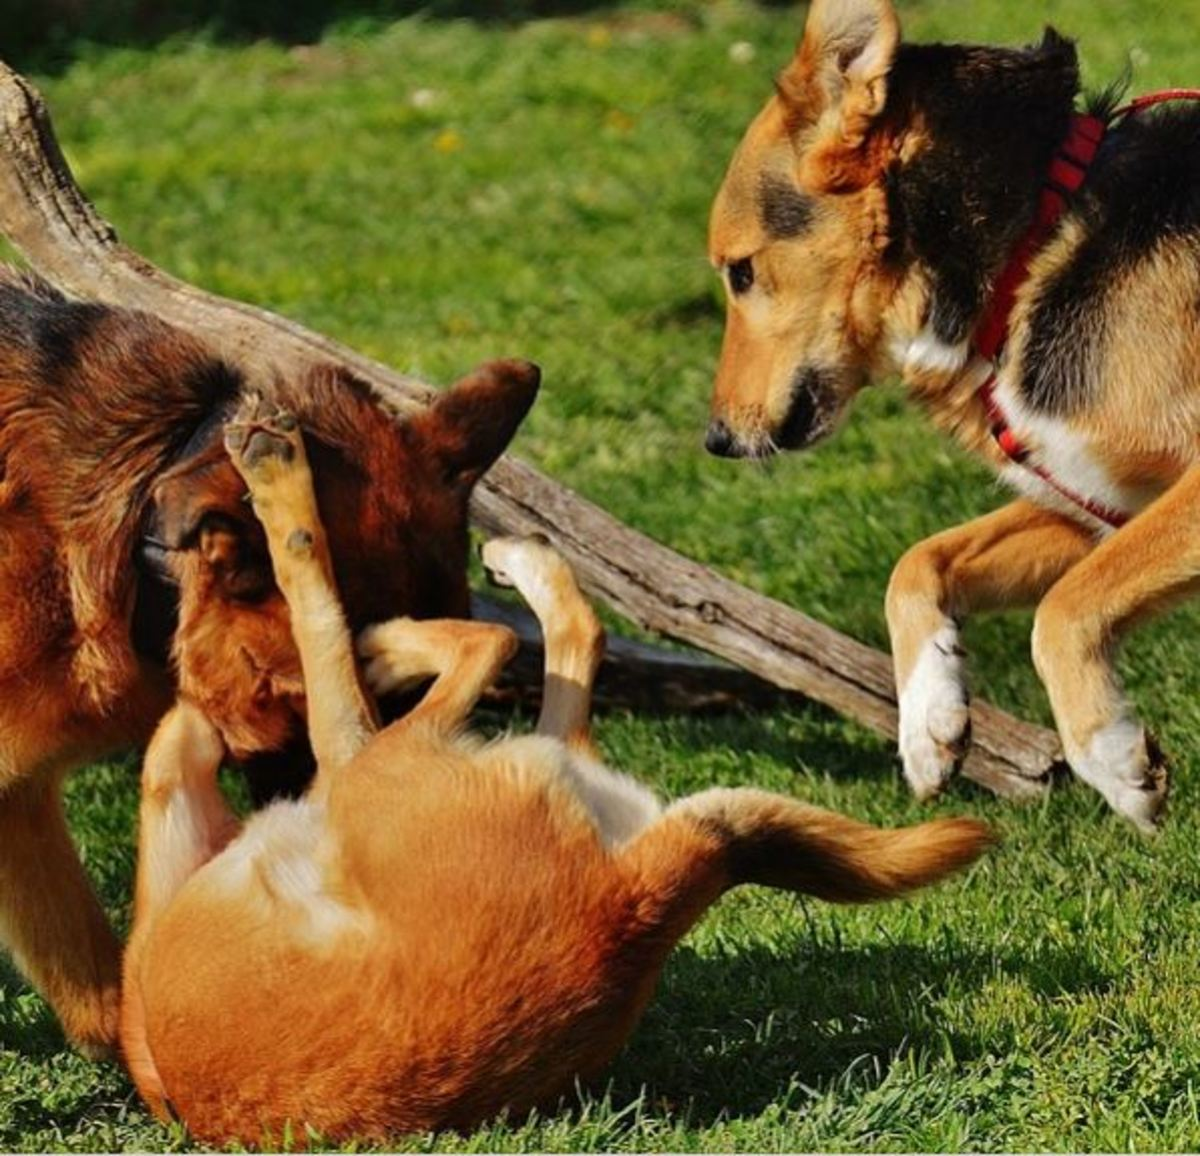 If you have helpers, have them prevent any other dogs from joining in to prevent a multiple dog fight.